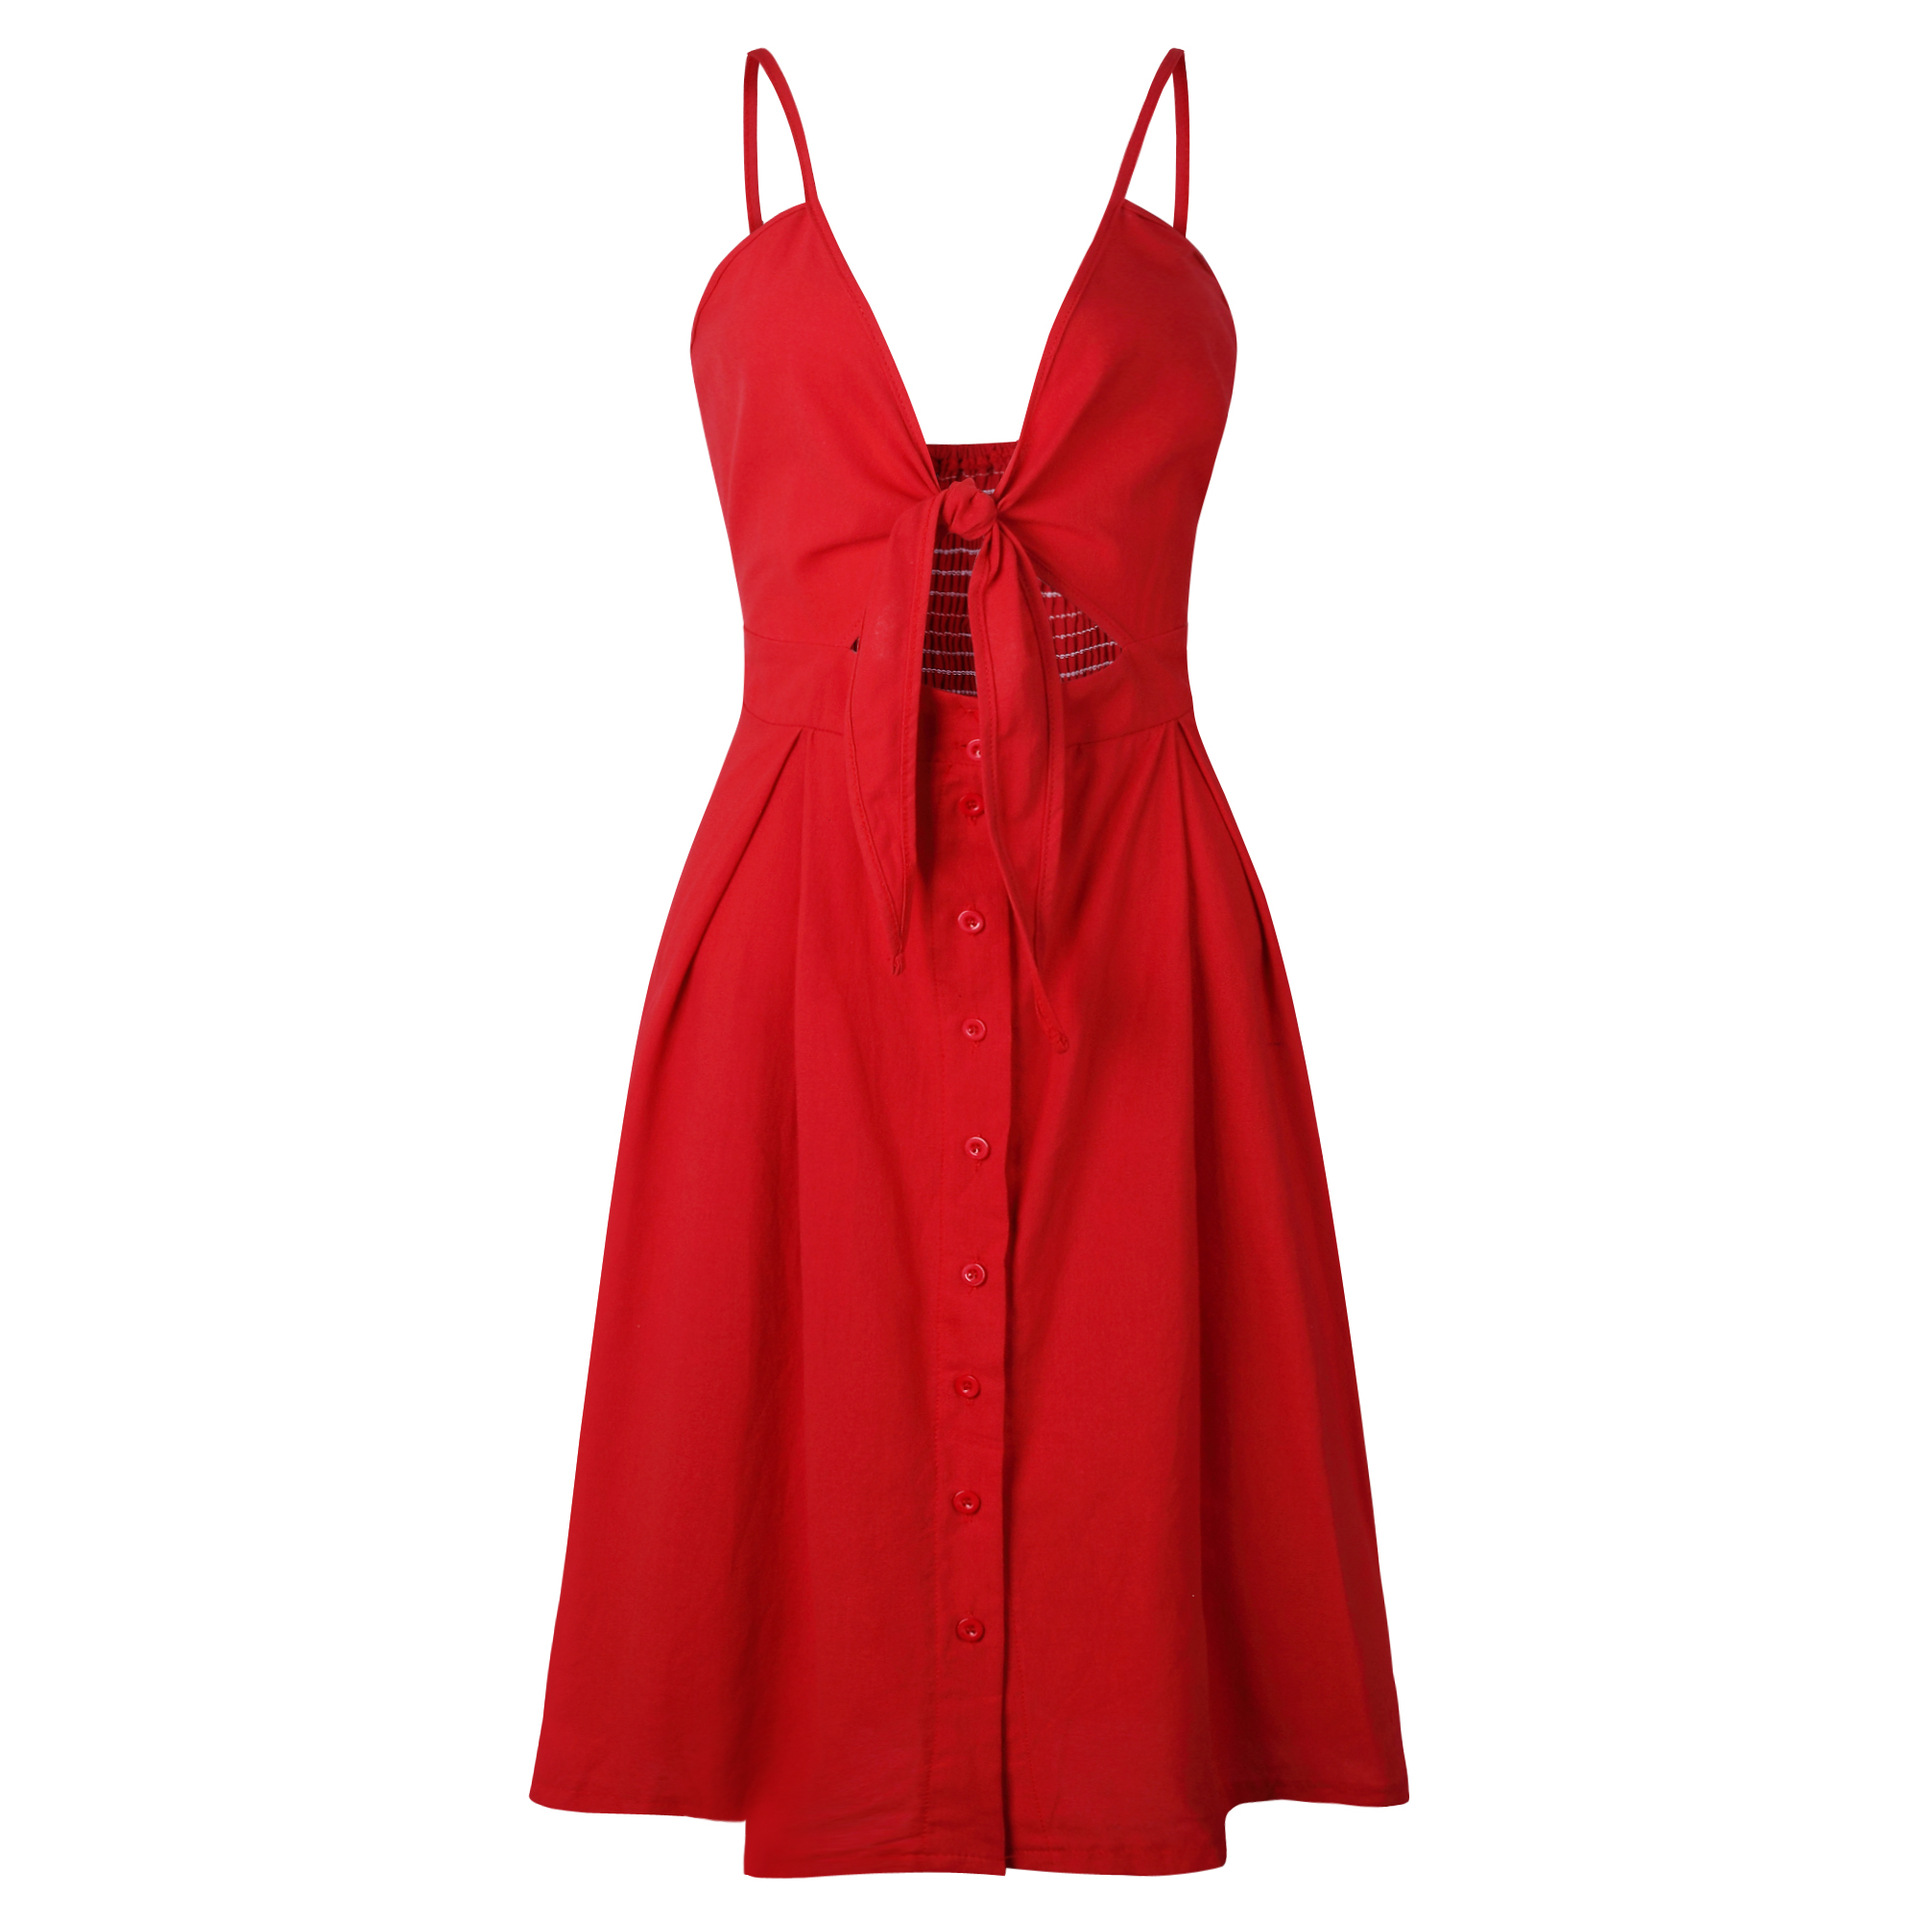 HTB1Qq2rwFuWBuNjSszbq6AS7FXaE - 6 colour Sexy Bow Backless Polka Dots Beach Summer Dress Women Cotton Deep V Neck Buttons Red White Off Shoulder Midi Dresses